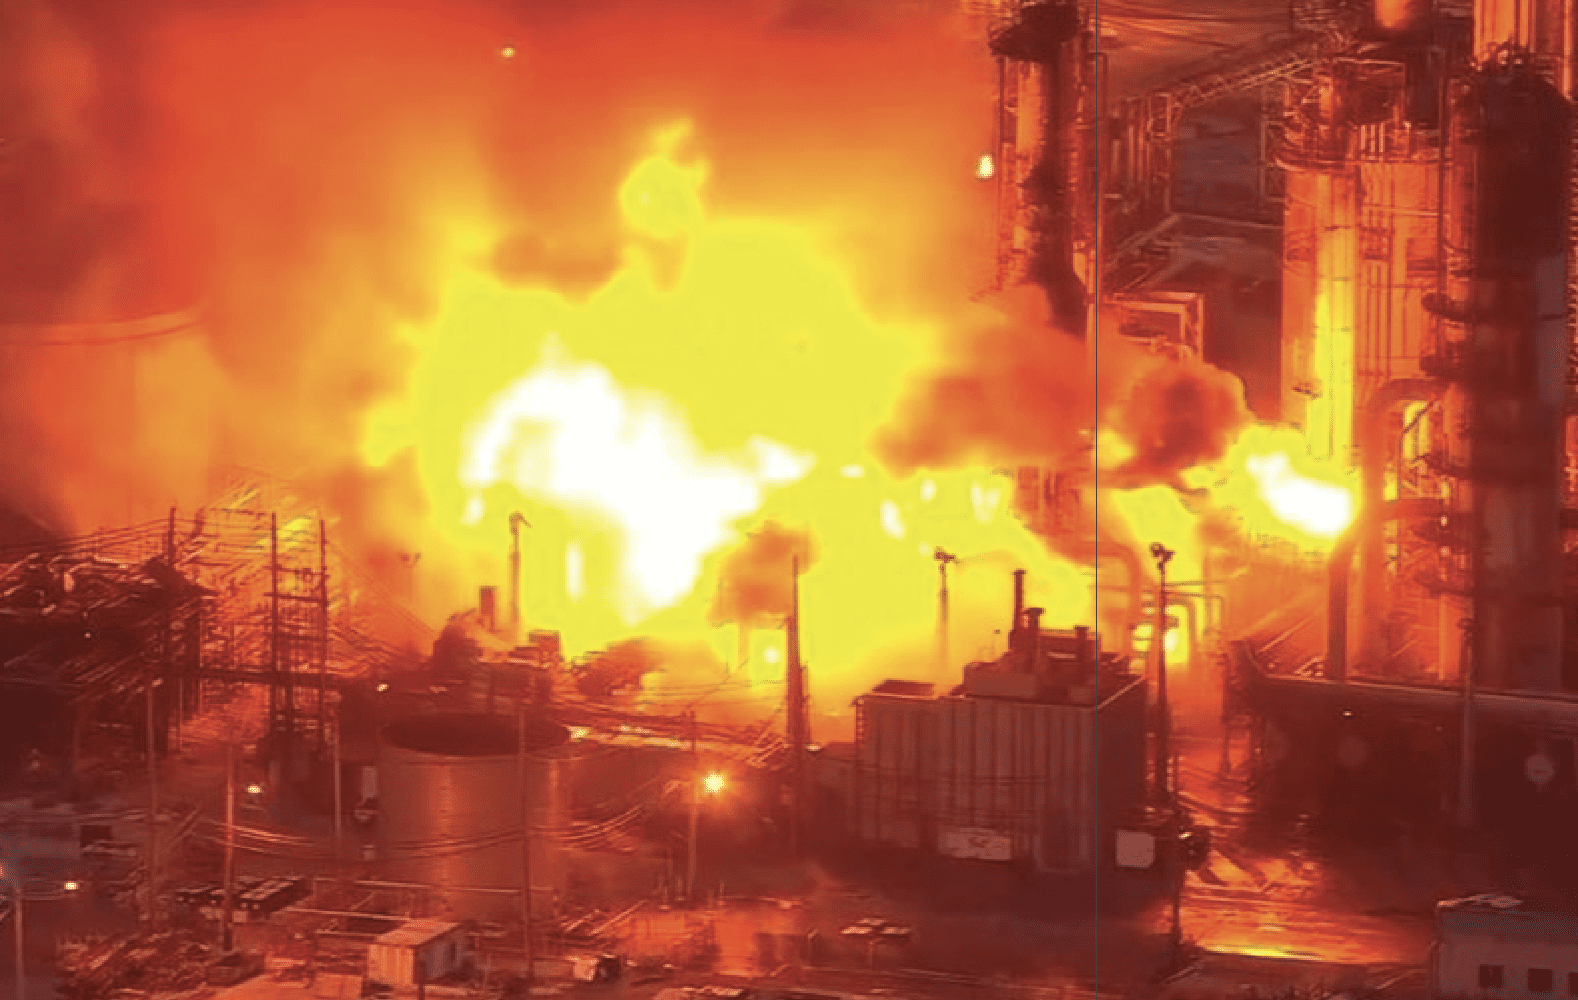 A massive fire burns at Philadelphia Energy Solutions Inc's oil refinery in this still image from video in Philadelphia, Pennsylvania, June 21, 2019. WCAU-TV/NBC via REUTERS